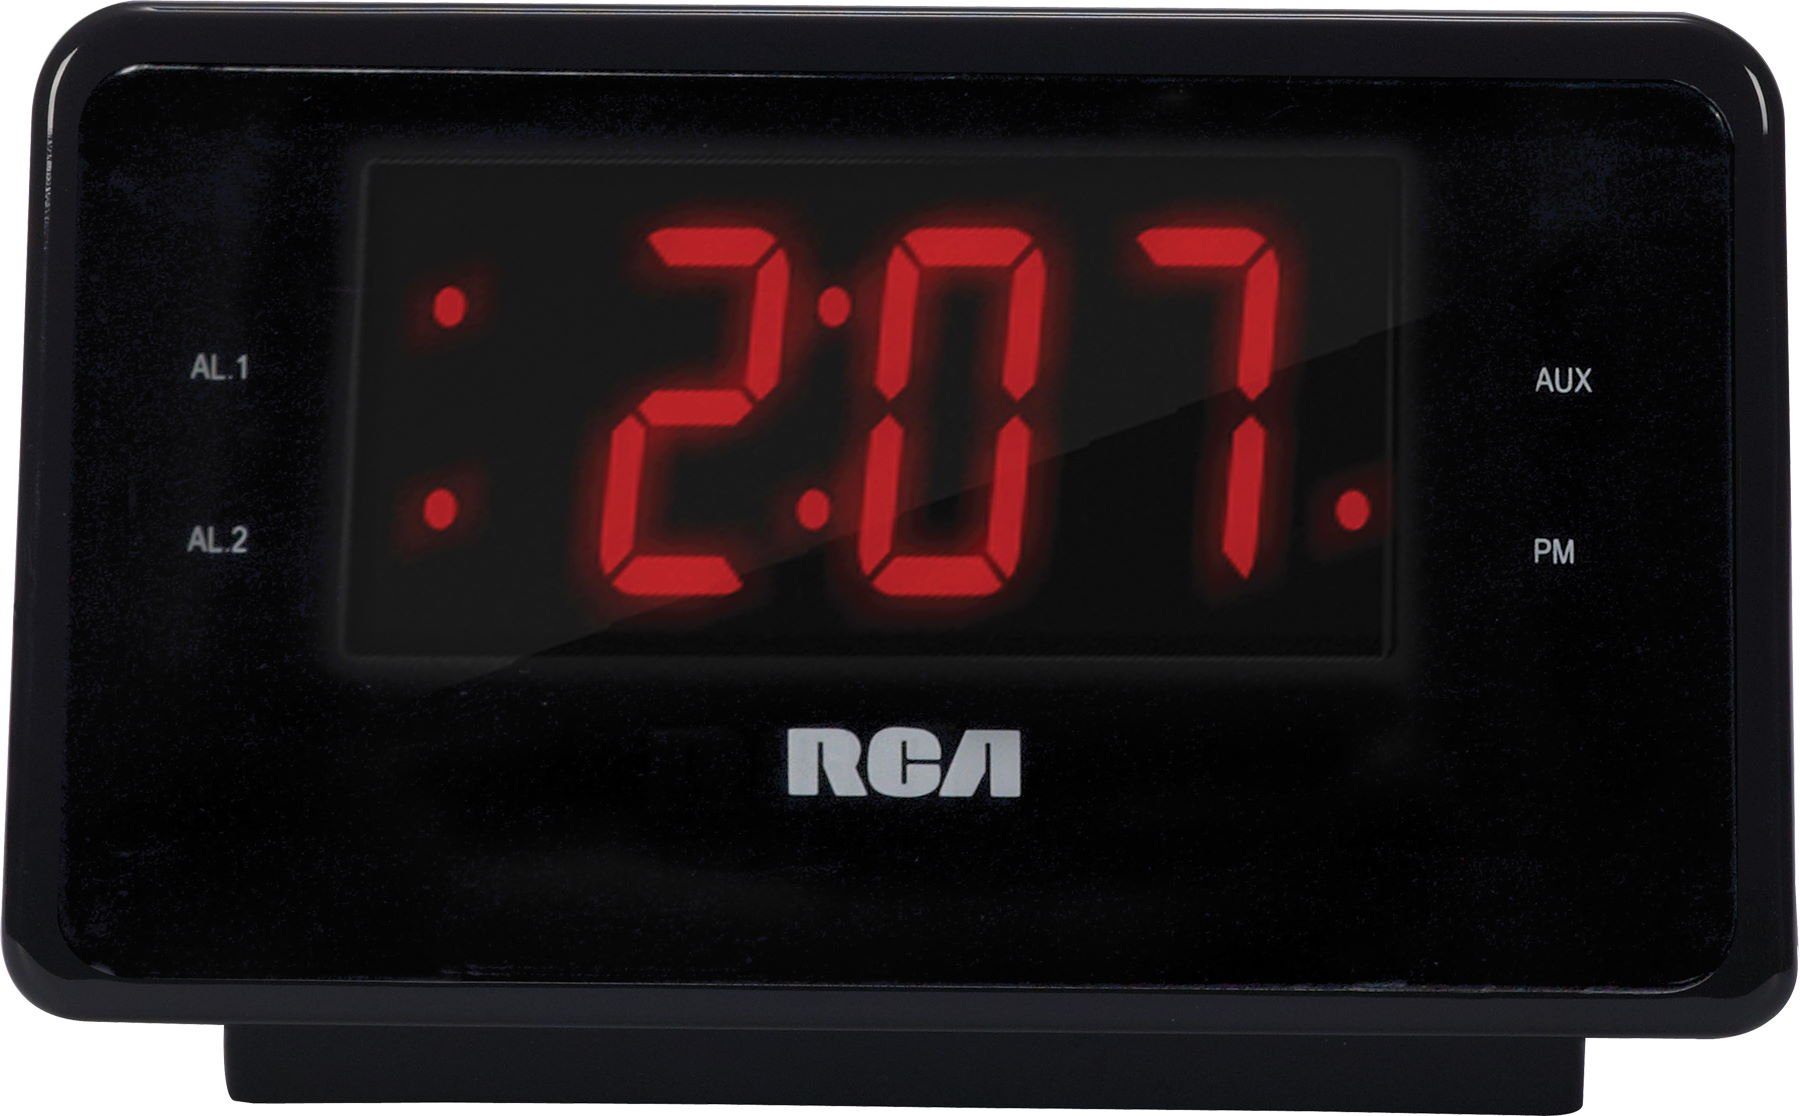 rca dual alarm clock ipod charging station with digital fm radio tuner large 44476083709 ebay. Black Bedroom Furniture Sets. Home Design Ideas